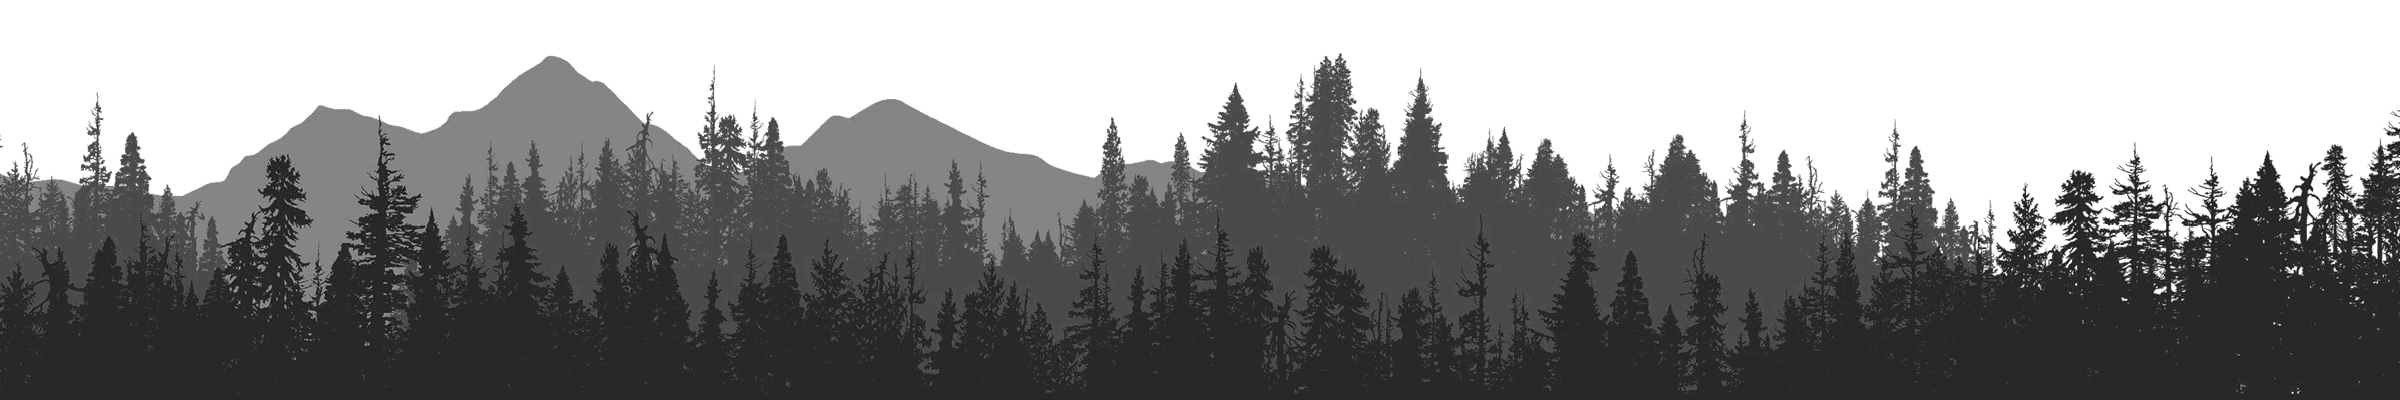 Canadian forest and mountain at dusk background